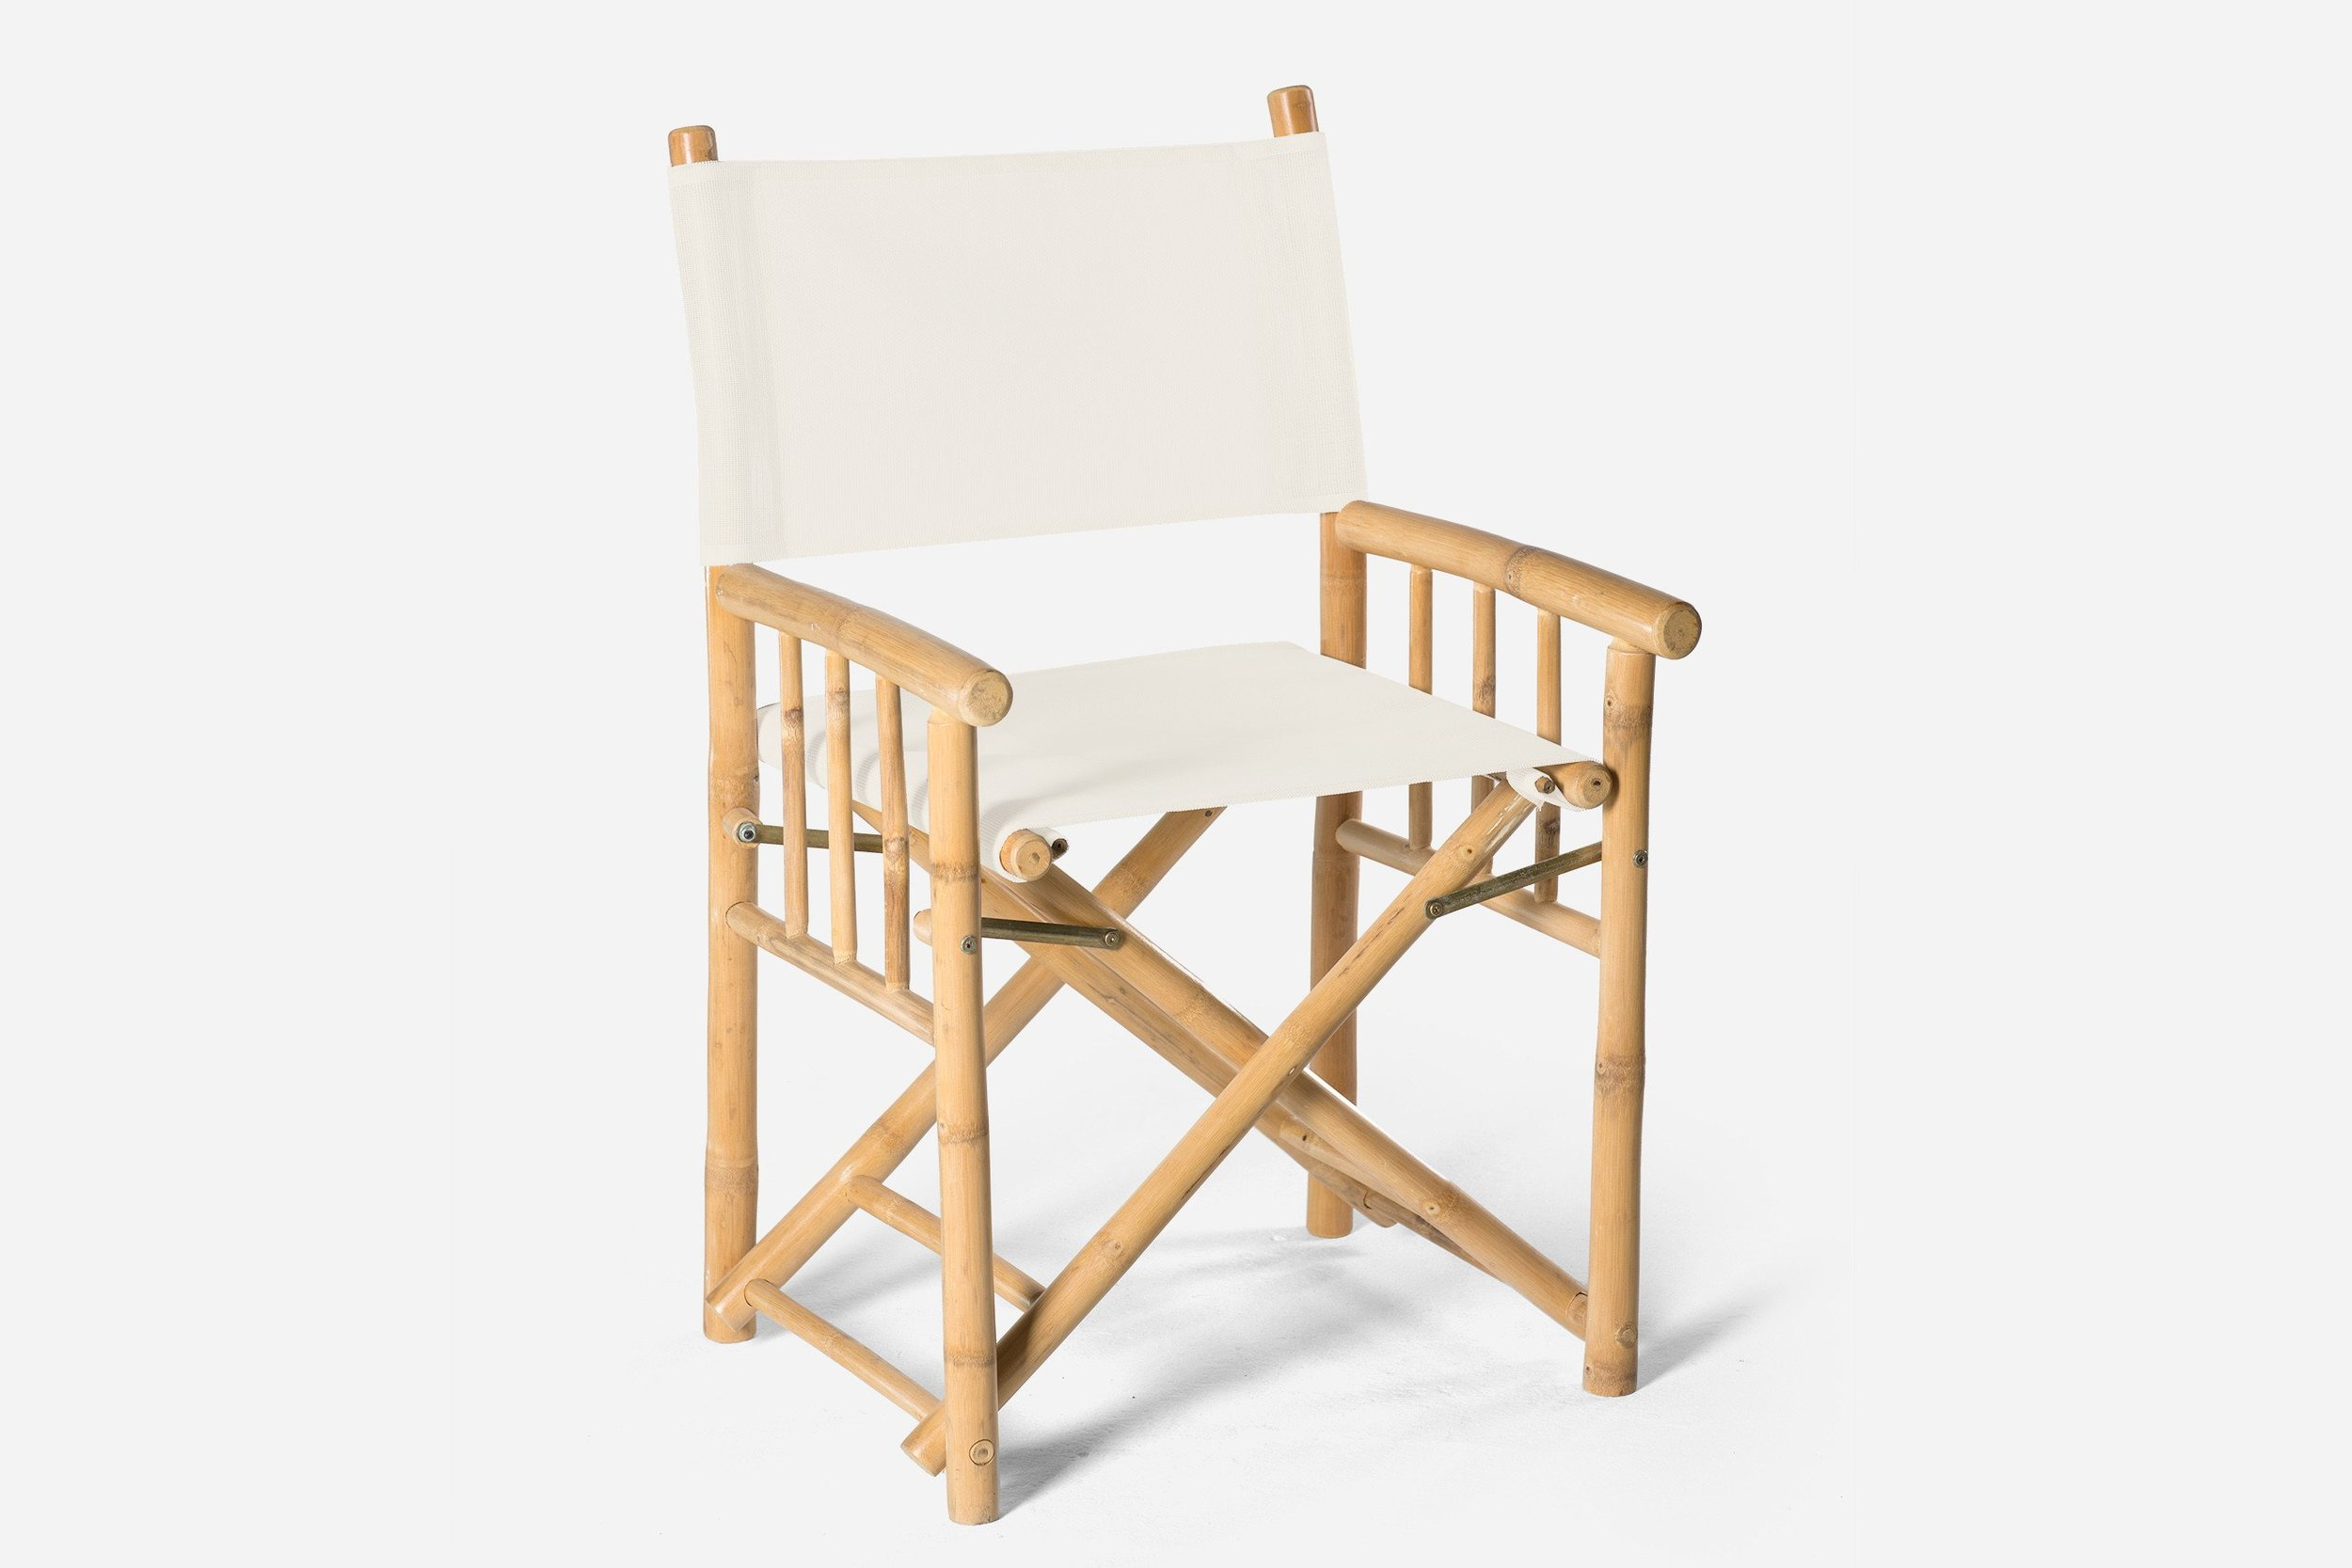 Bamboo Directors Chair White   500mm (L) x 570mm (W) x 900mm (H) $25